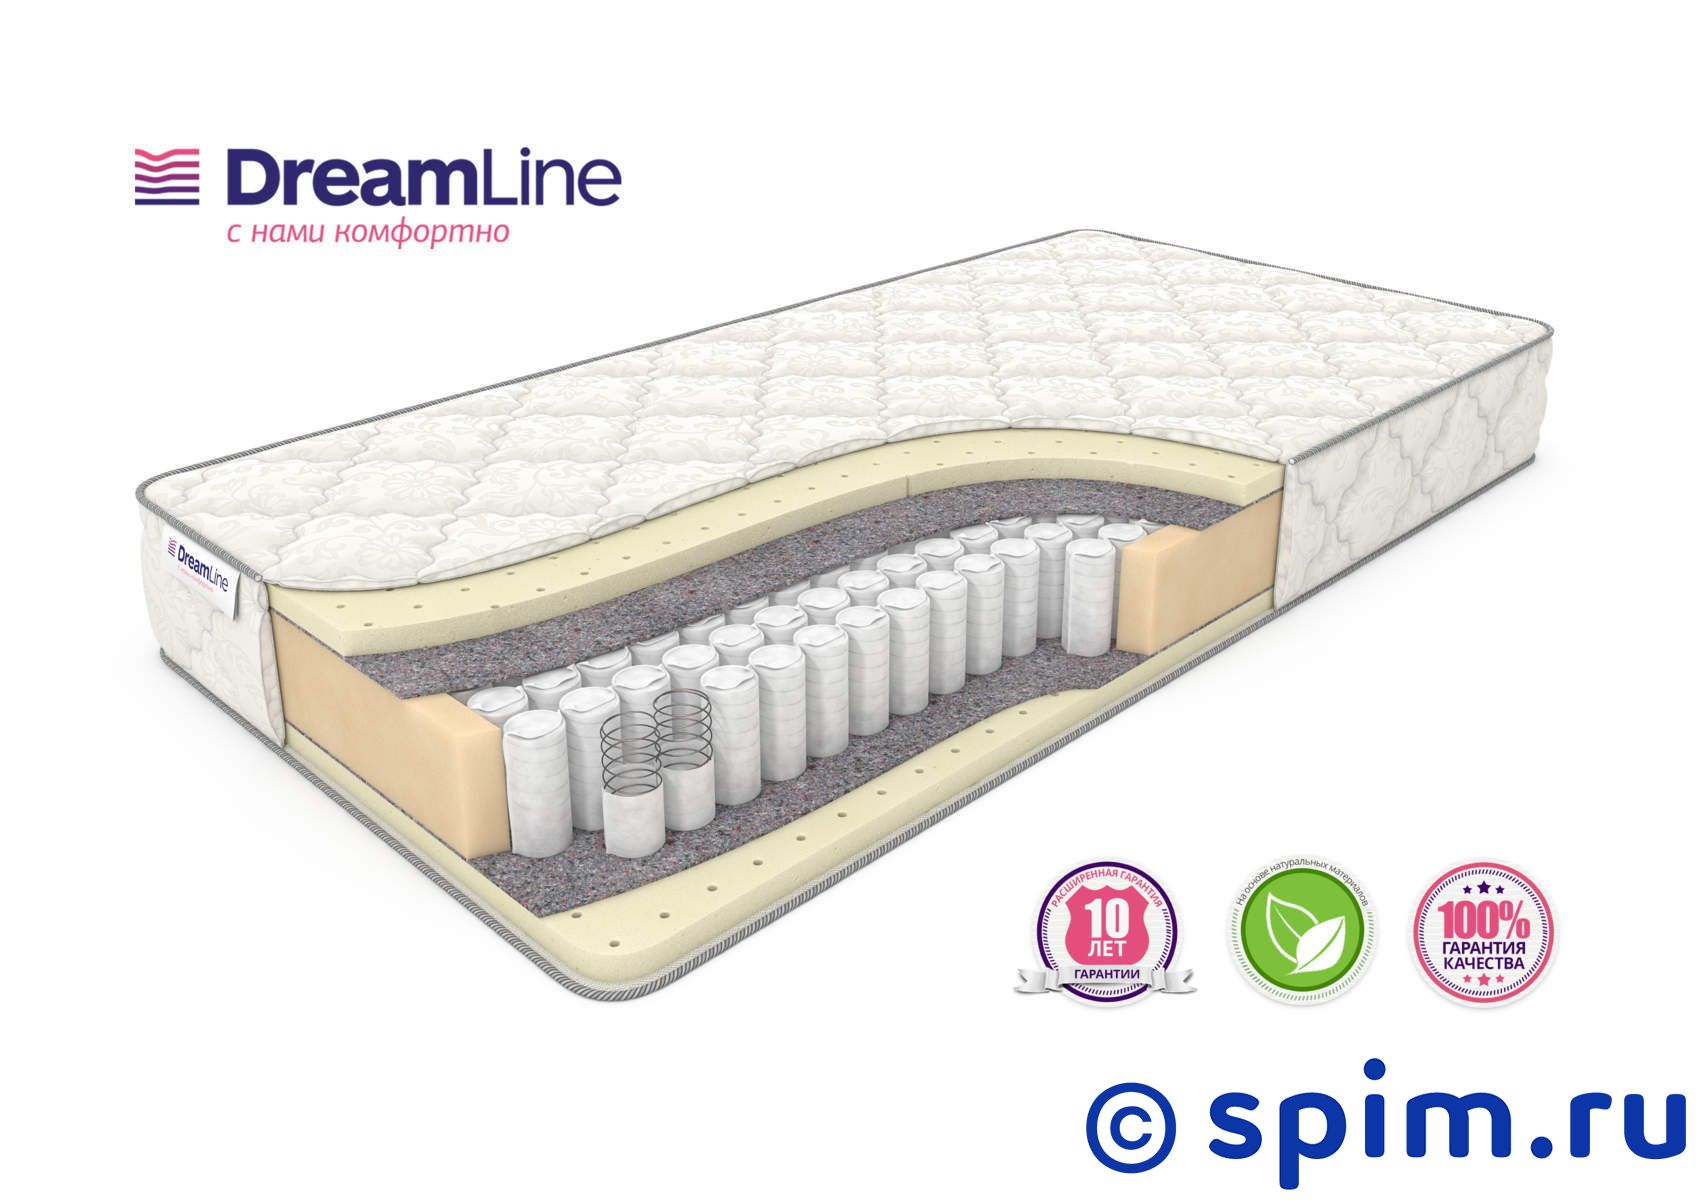 Матрас DreamLine Sleep 3 Tfk 140х190 см